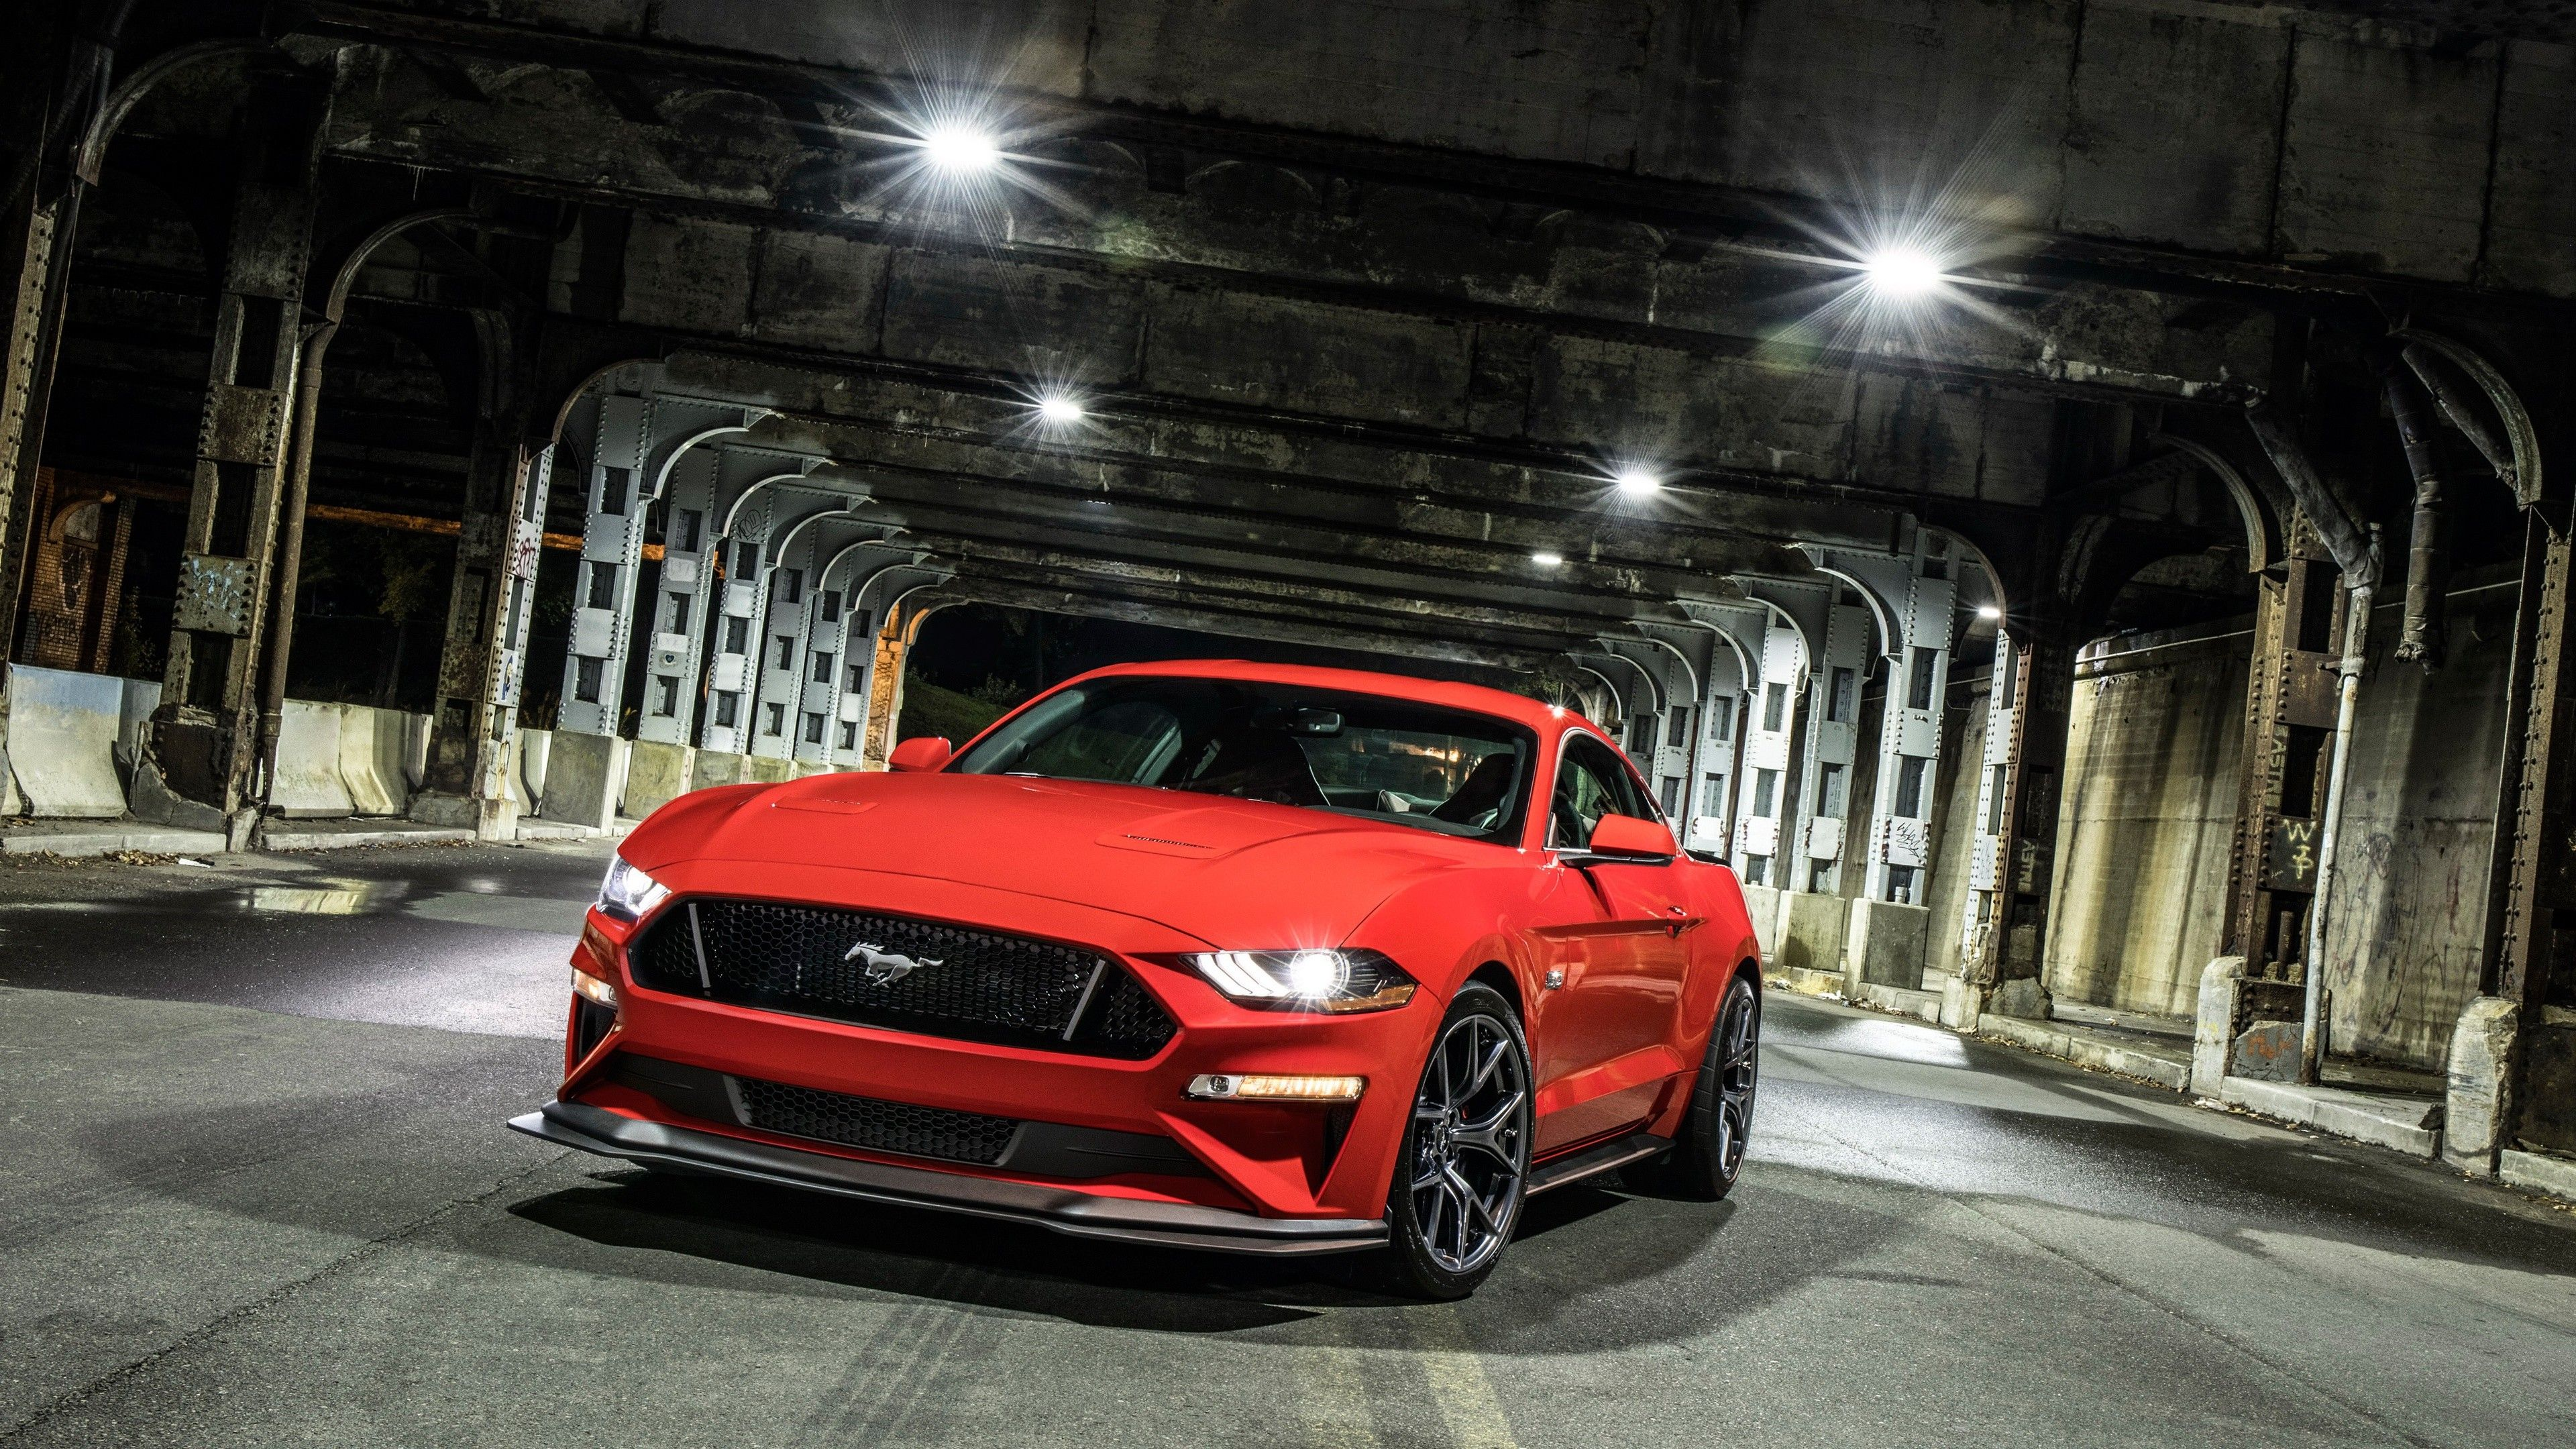 Ford Mustang 4K Wallpapers   Top Ford Mustang 4K Backgrounds 3840x2160